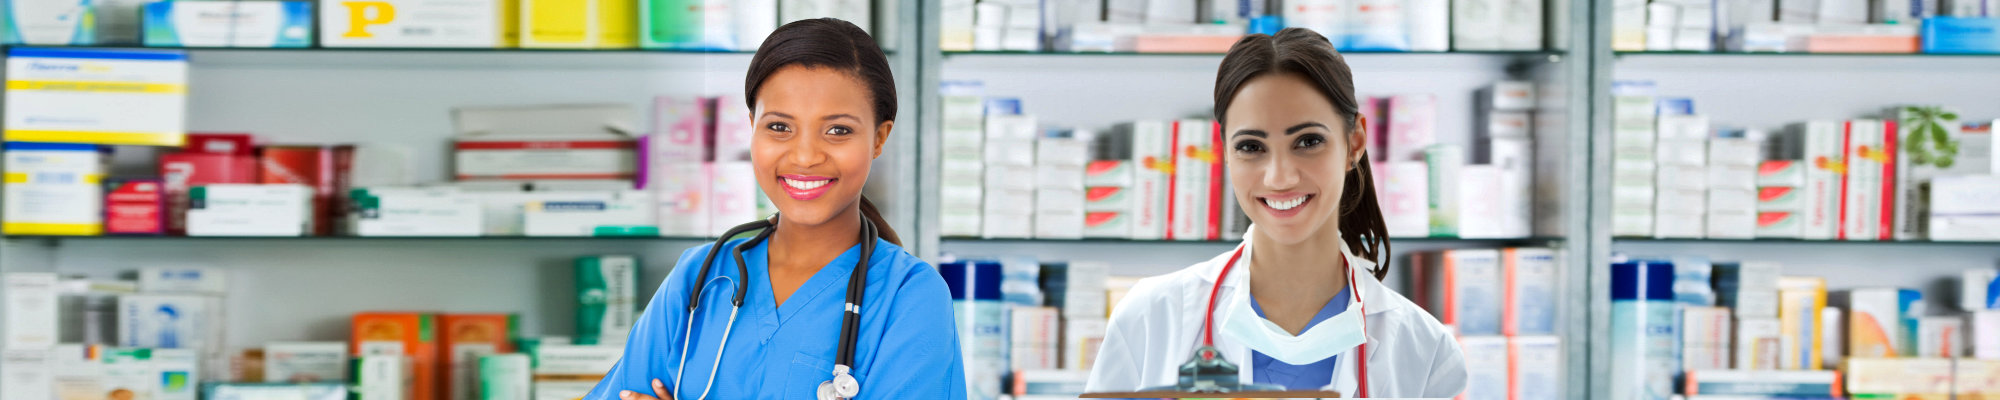 Portrait of a two young pharmacists